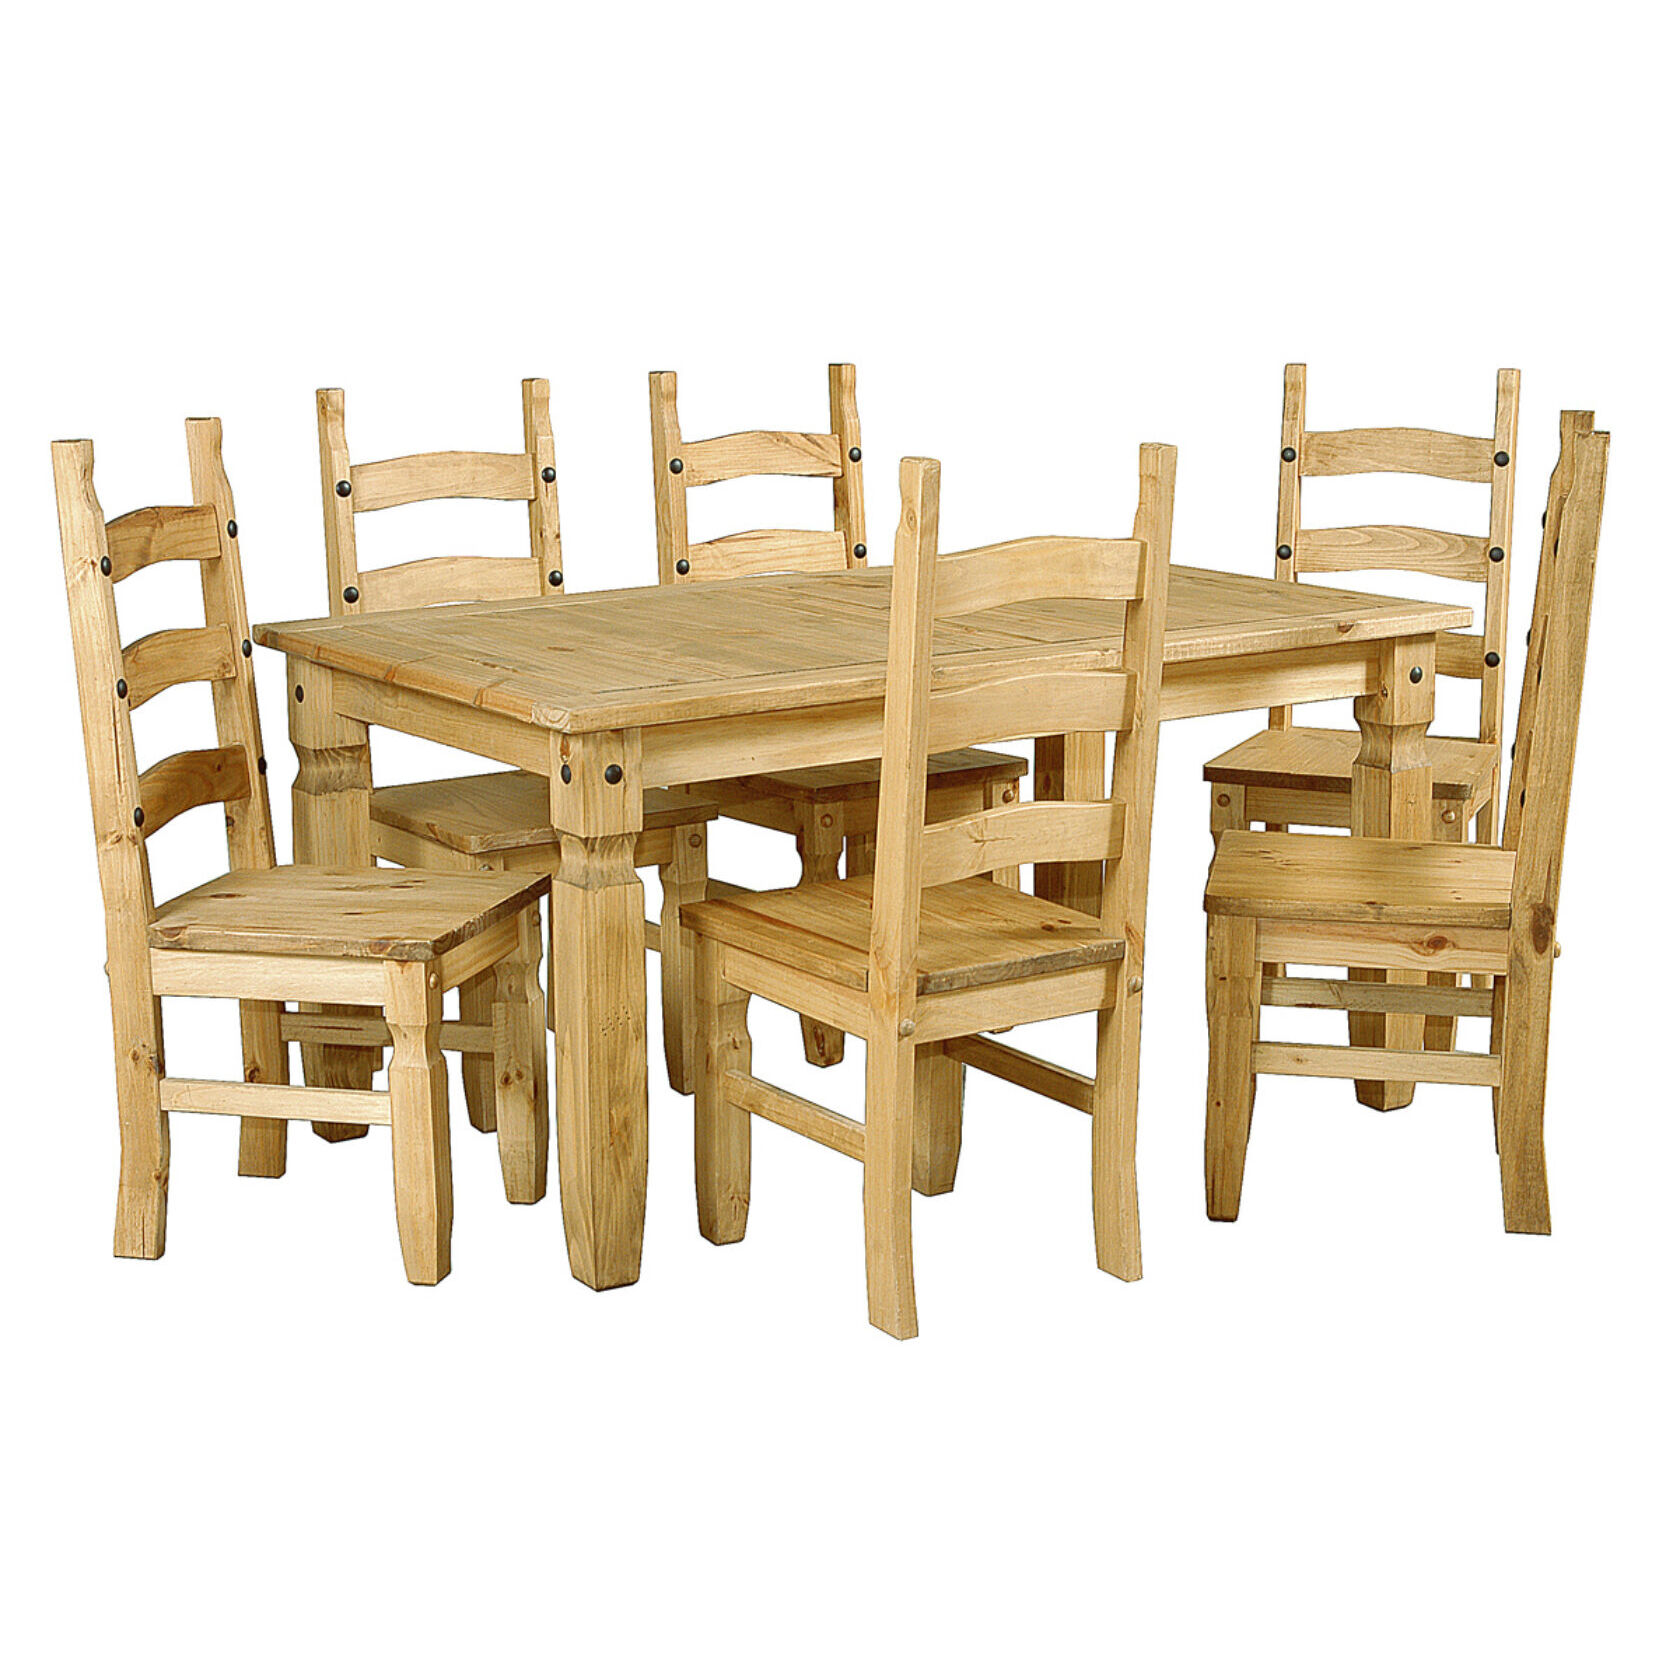 6 Seat Wooden Dining Sets Shop At Designer Sofas 4u